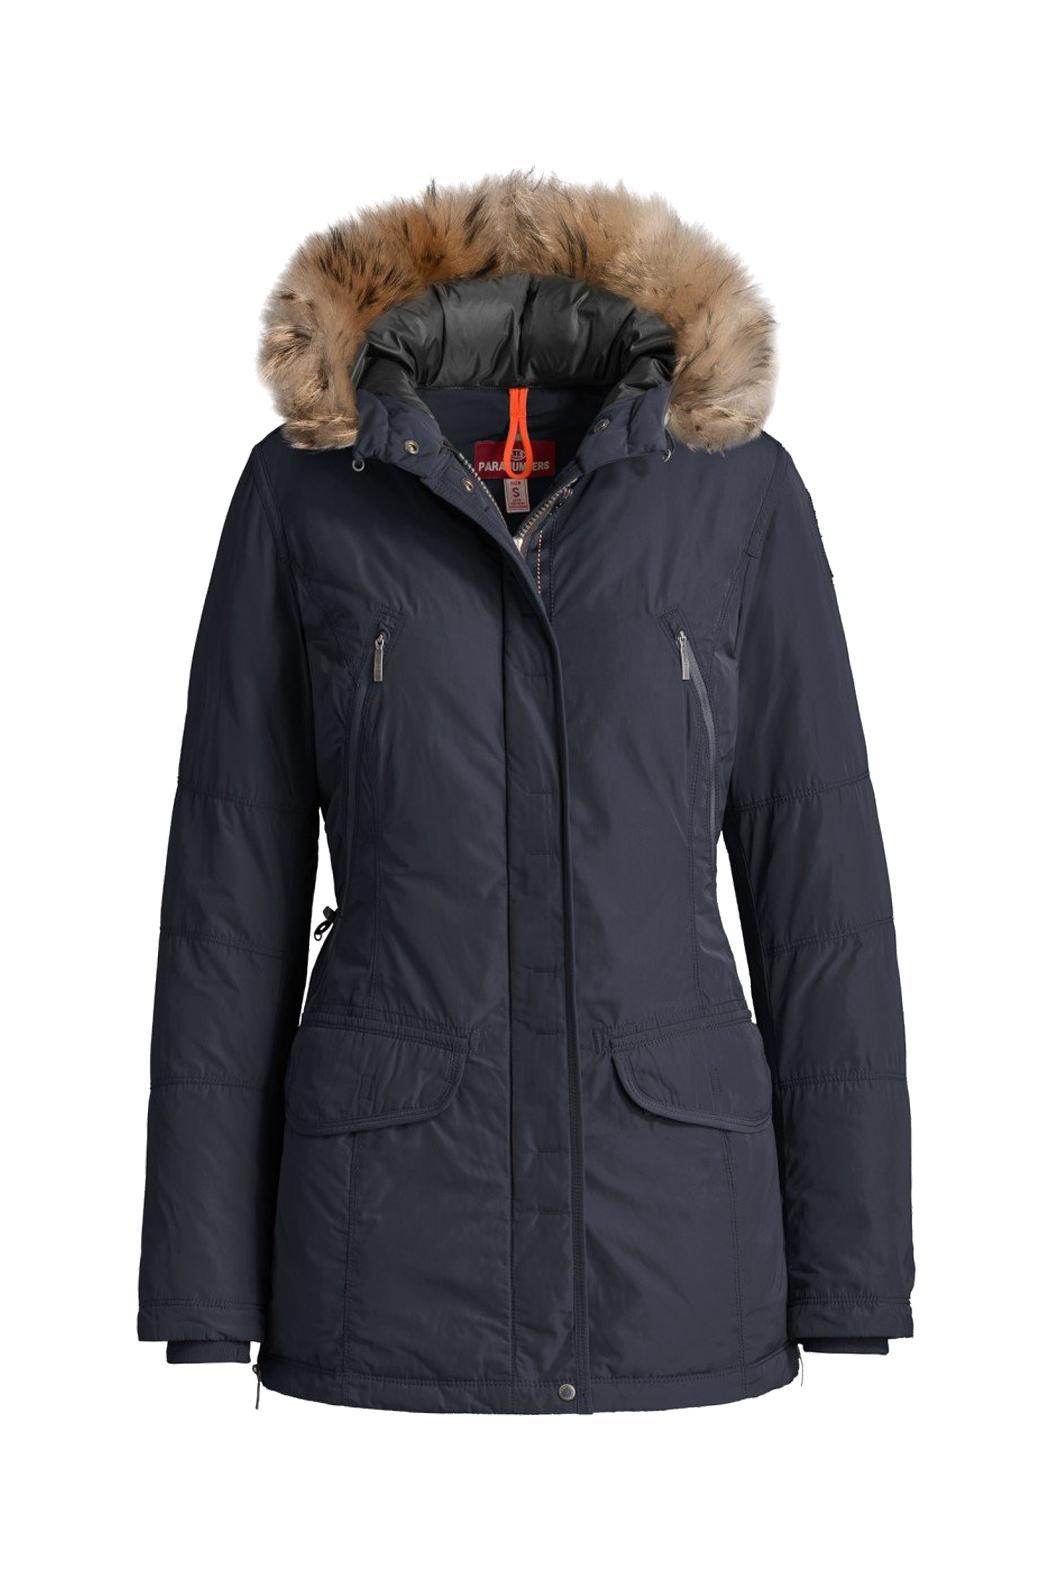 parajumpers for sale montreal